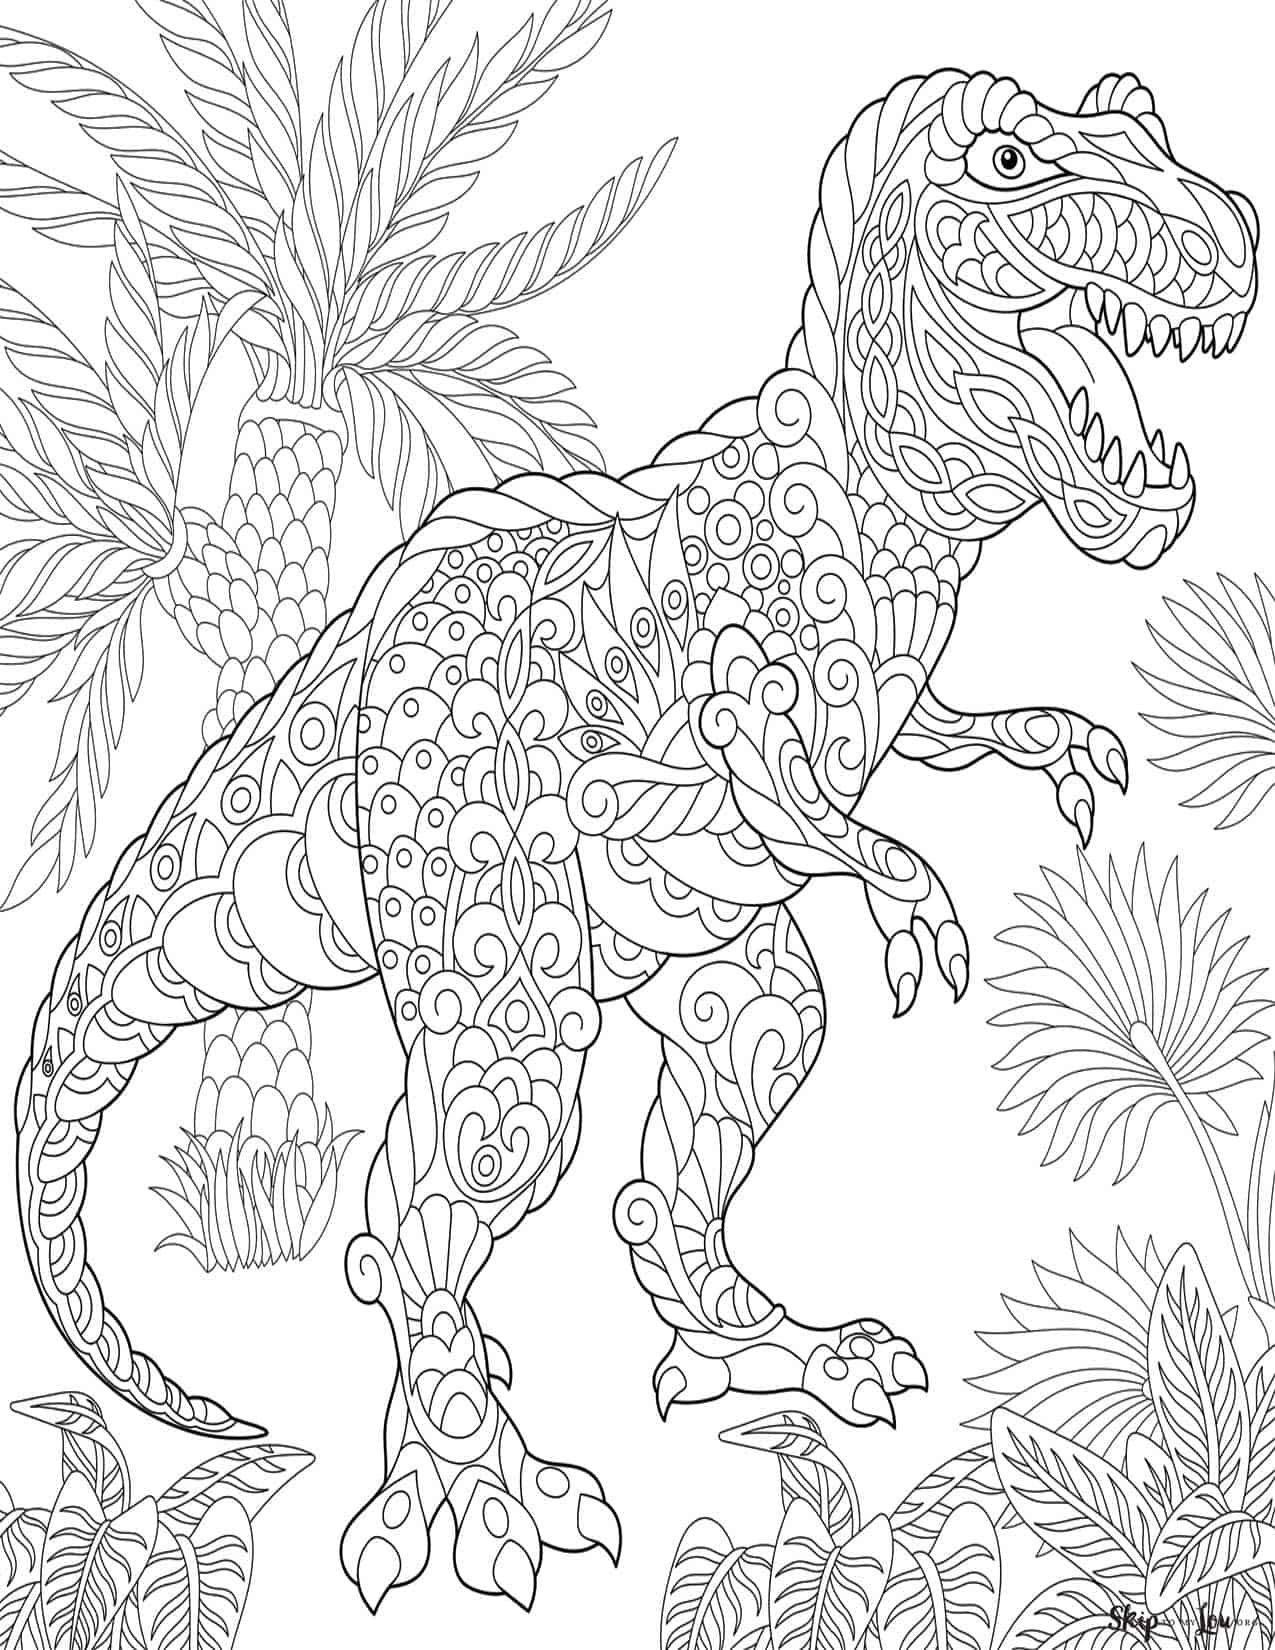 dinosaur printout free printable triceratops coloring pages for kids dinosaur printout 1 2